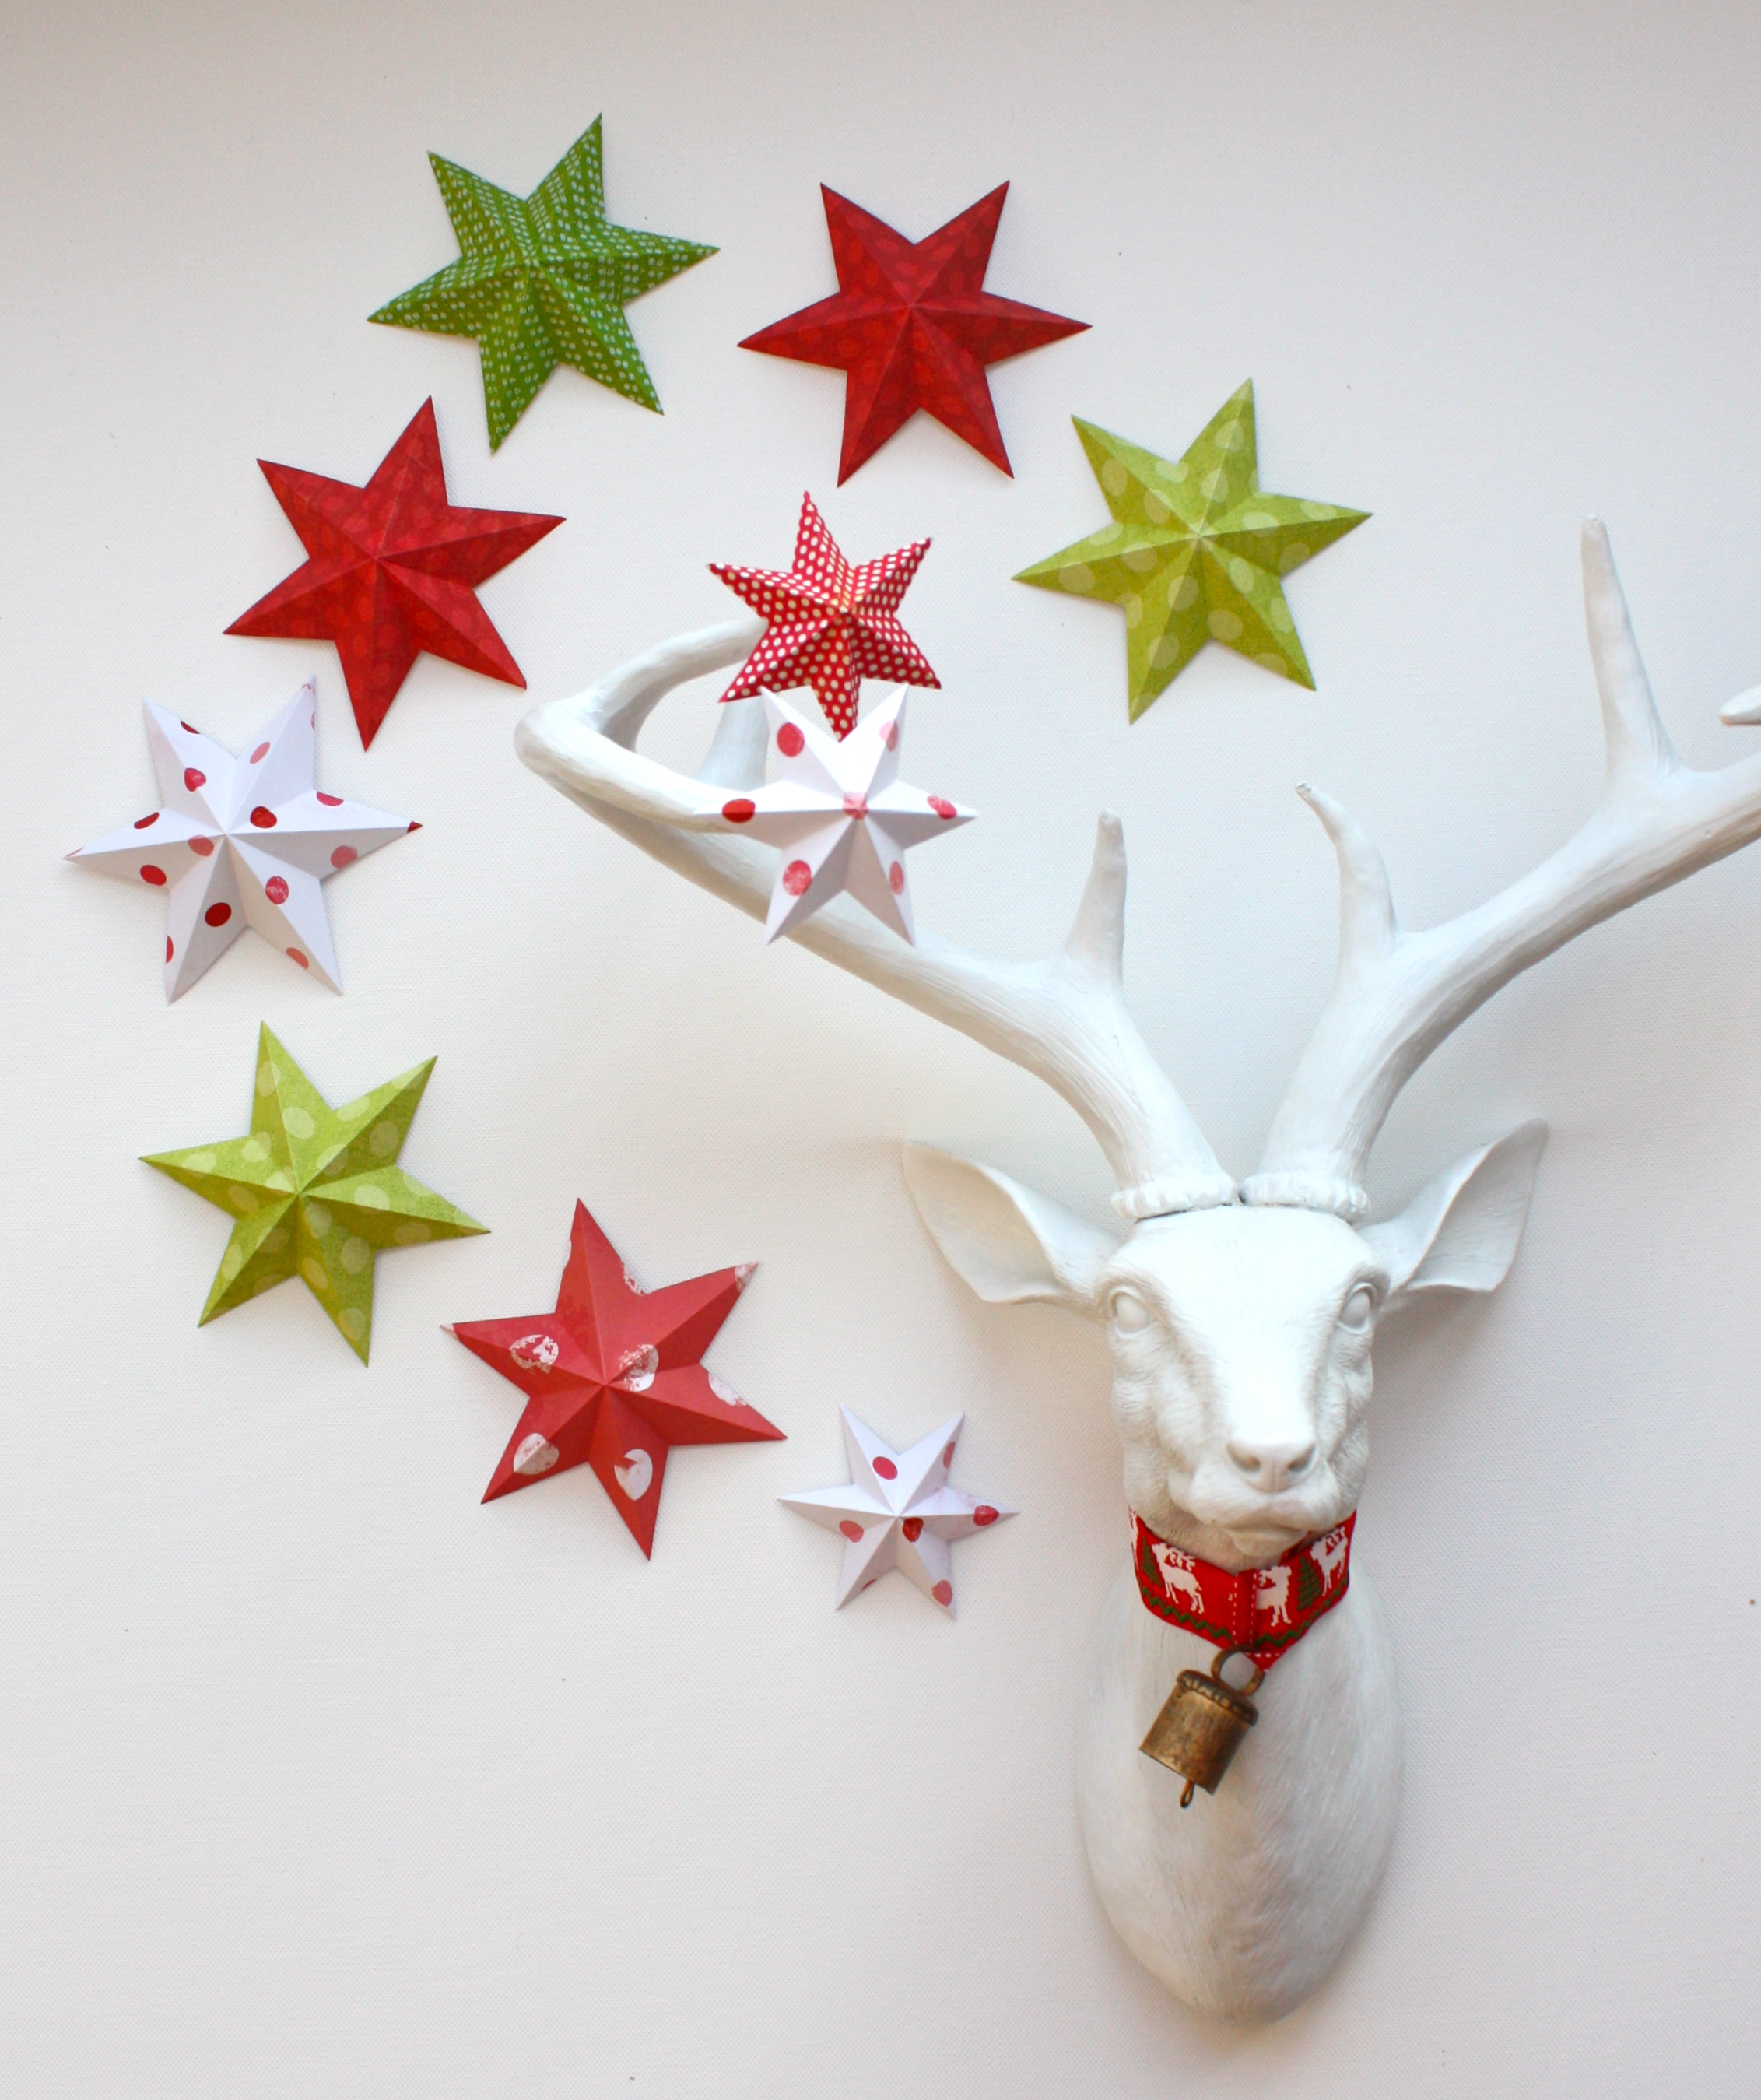 easy folded paper 5 and 6 point stars and snowflakes - Handmade Paper Christmas Decorations